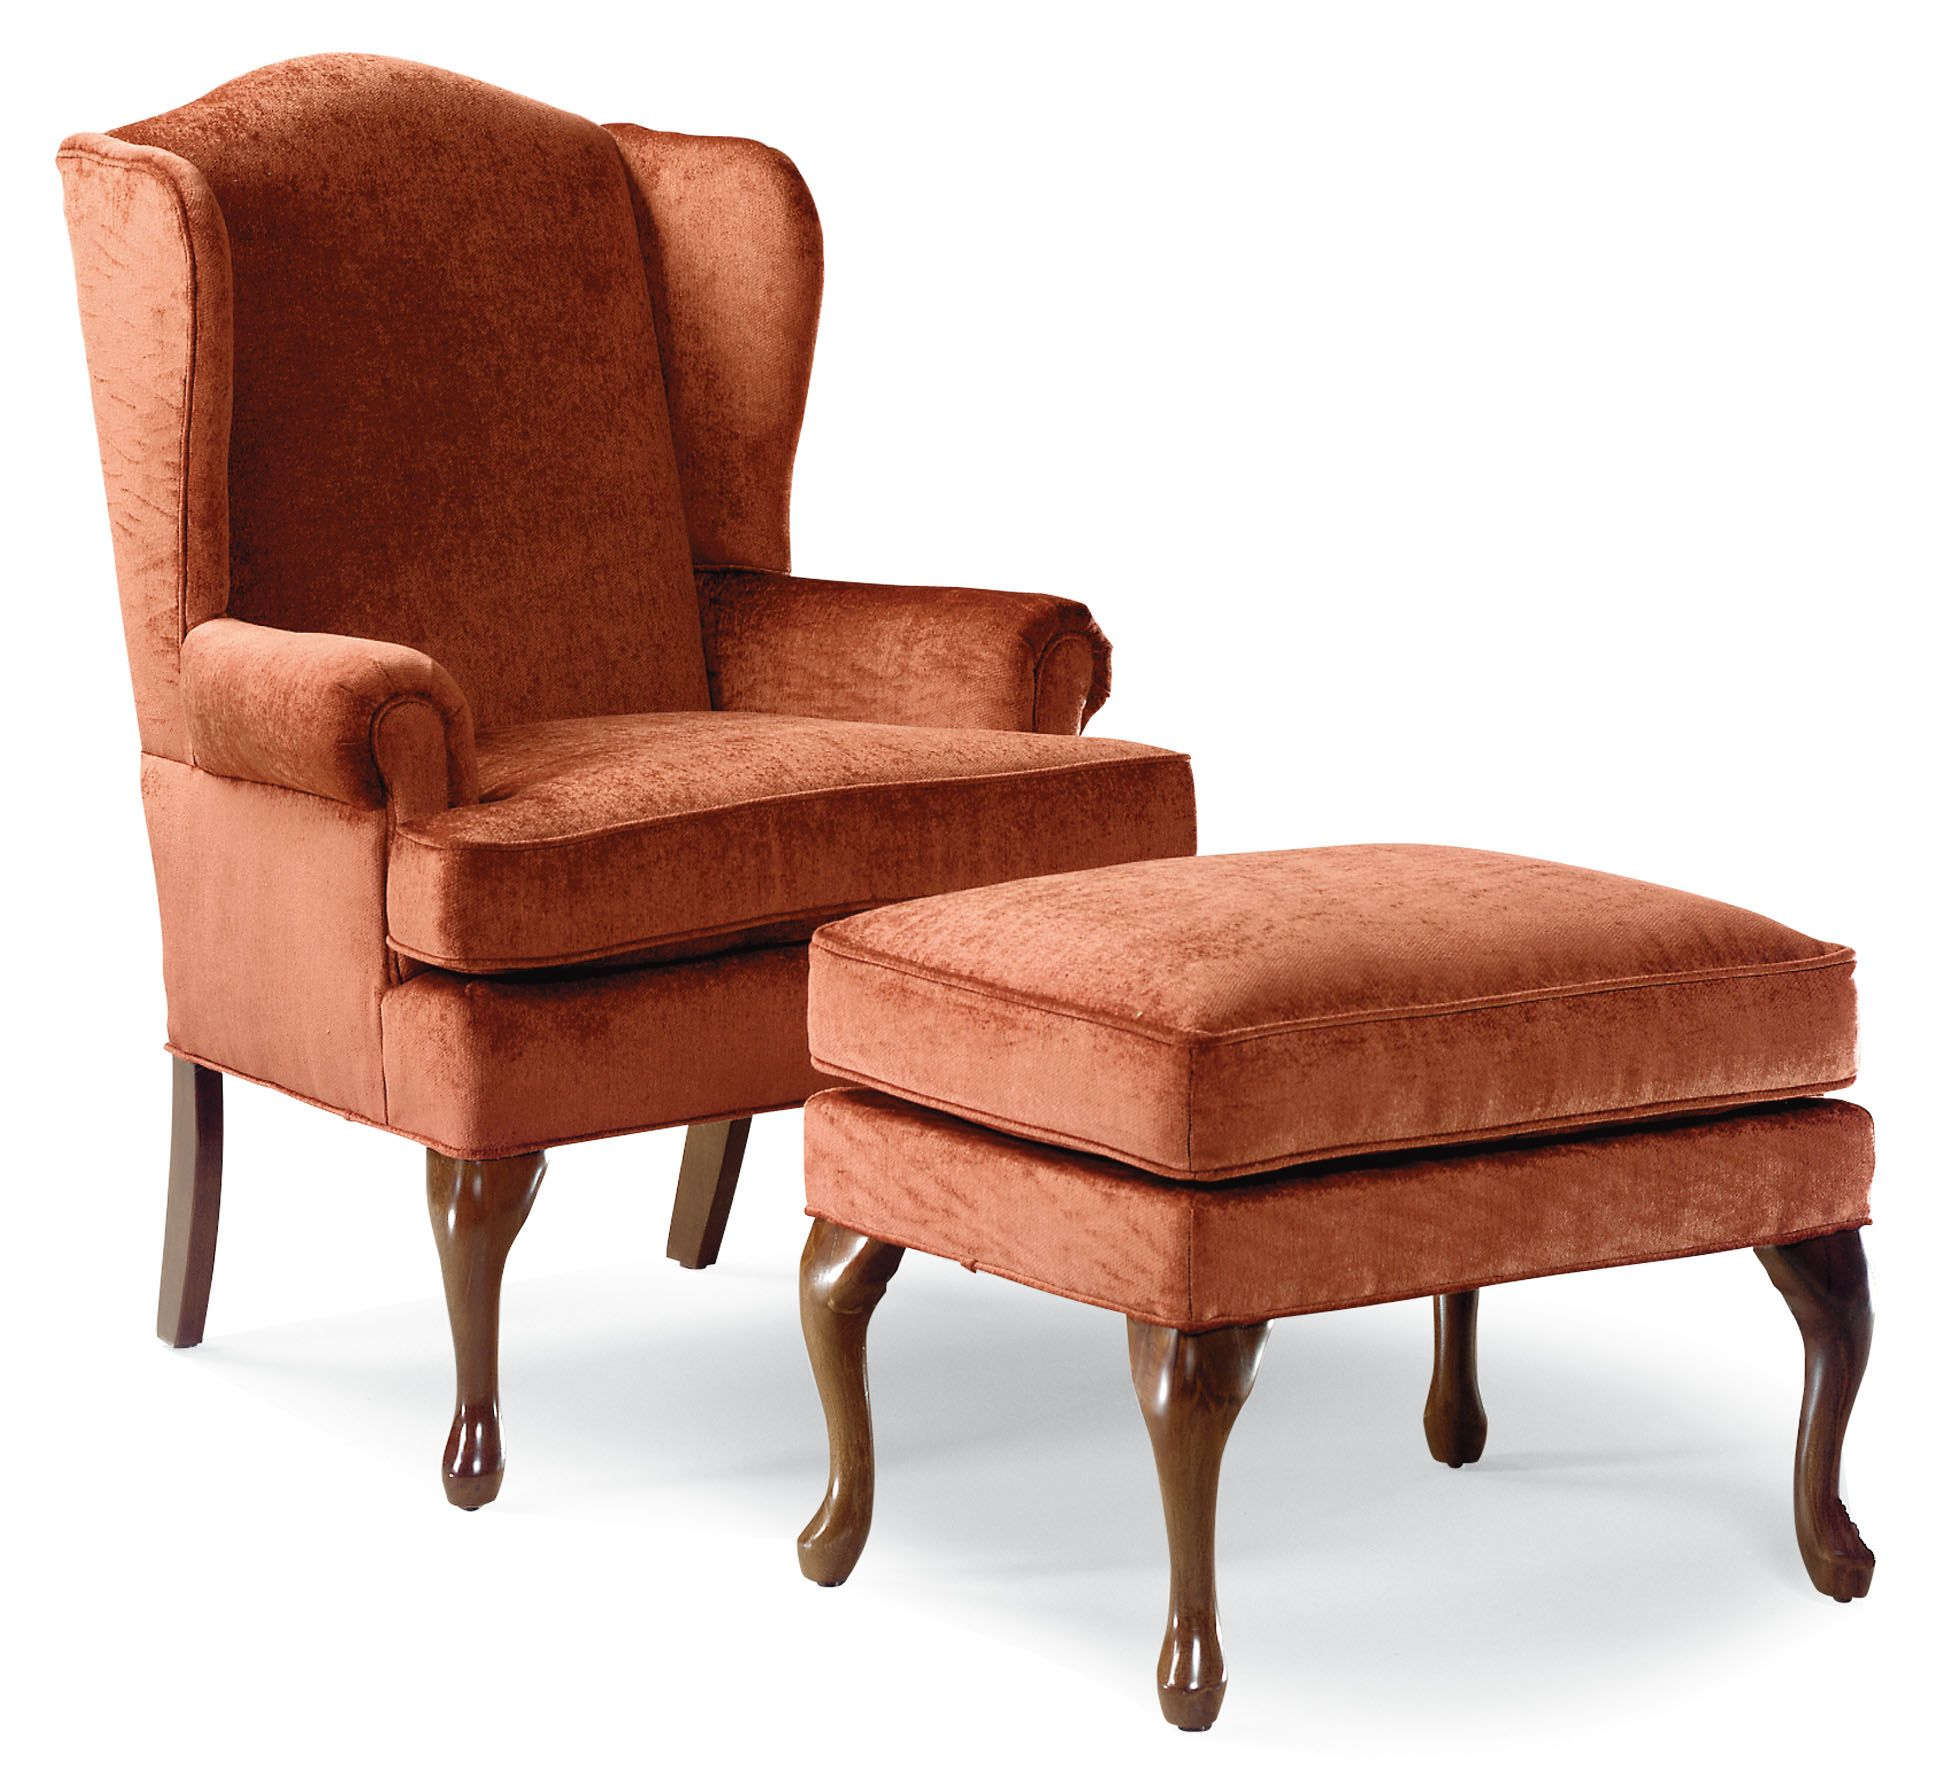 Phenomenal Wing Chair English Design Class Broyhill Furniture Andrewgaddart Wooden Chair Designs For Living Room Andrewgaddartcom